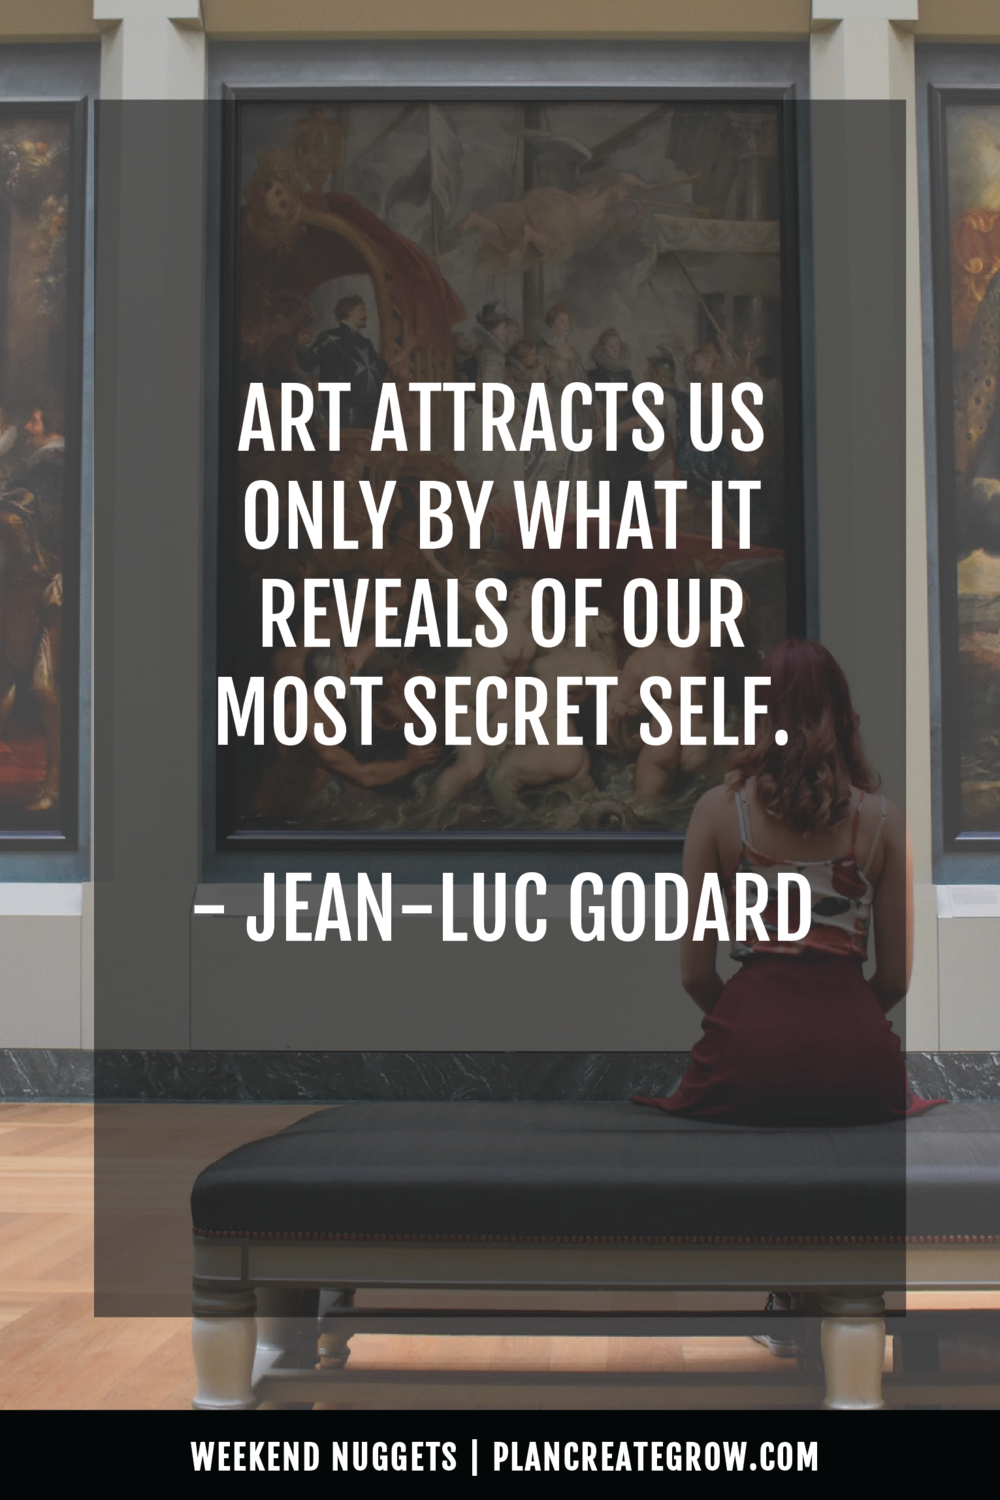 """Art attracts us only by what is reveals of our most secret self."" - Jean-Luc Goddard  This image forms part of a series called Weekend Nuggets - a collection of quotes and ideas curated to delight and inspire - shared each weekend. For more, visit plancreategrow.com/weekend-nuggets."